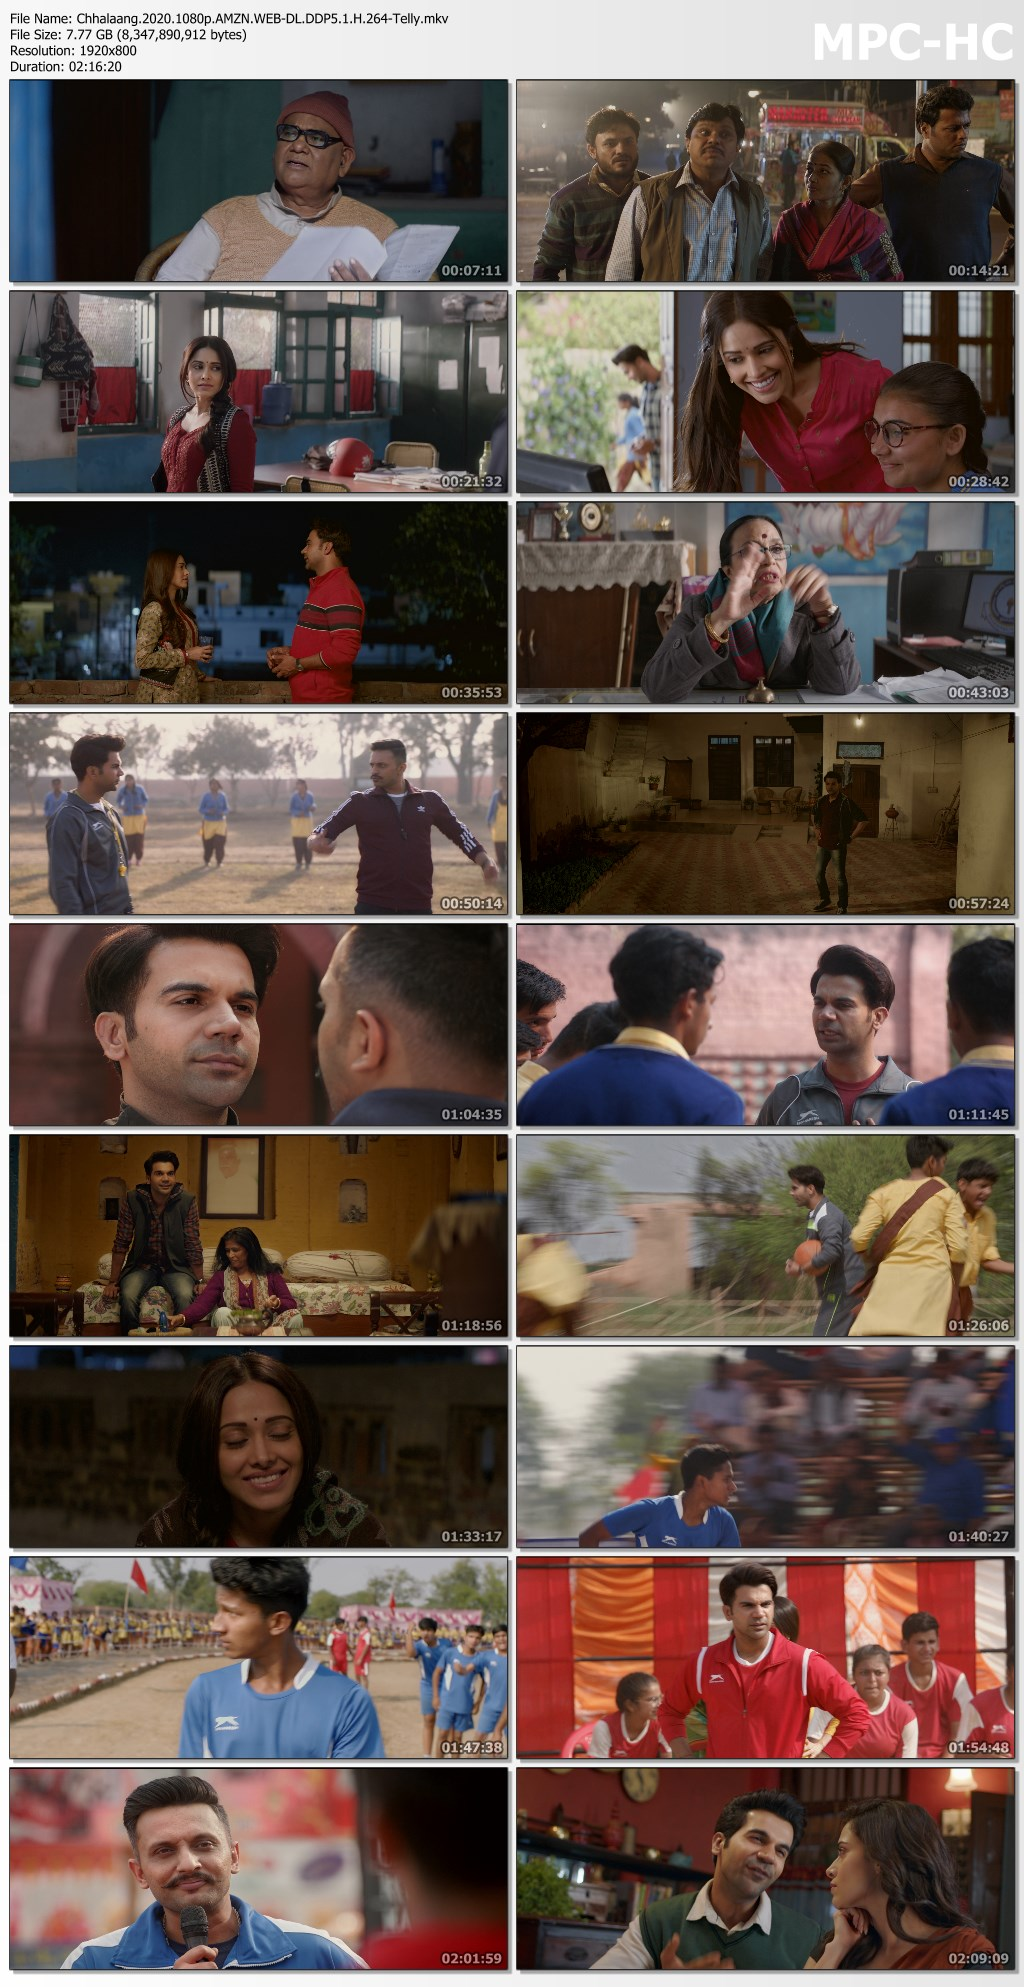 Chhalaang.2020.1080p.AMZN.WEB DL.DDP5.1.H.264 Telly.mkv thumbs